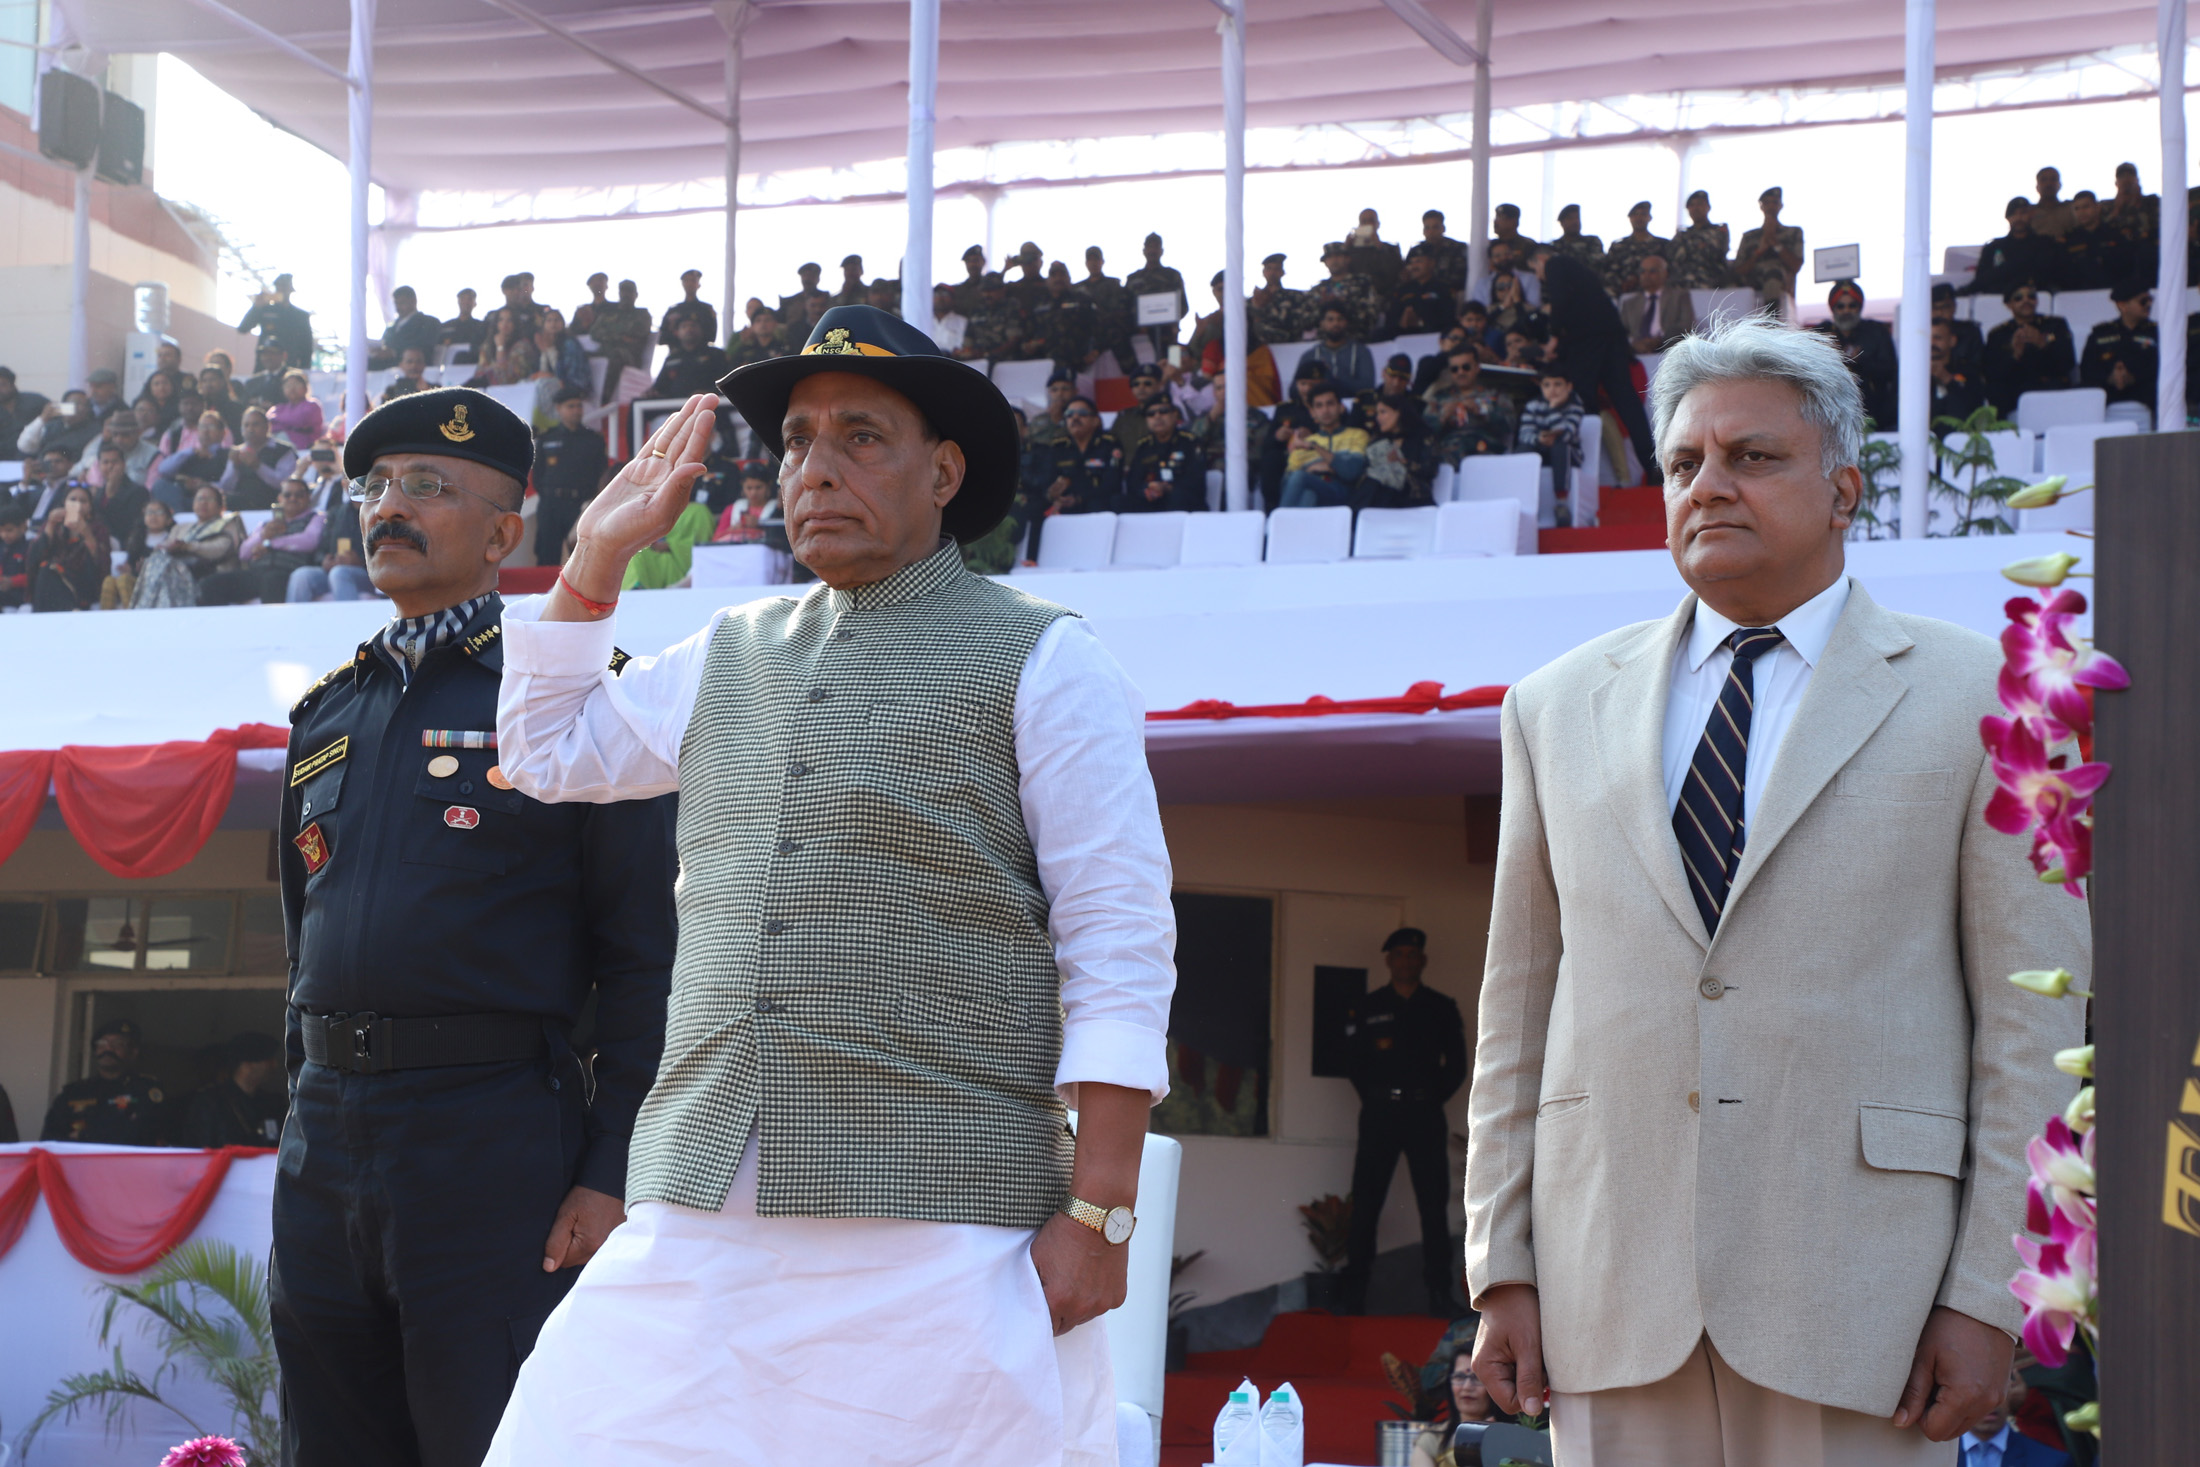 The Union Home Minister, Shri Rajnath Singh taking salute of the march past, during the Closing Ceremony of the 8th All India Police Commando Competition, at Manesar, Gurugram, in Haryana on January 20, 2018.  The Director General, NSG, Shri Sudhir Pratap Singh and the Director, IB, Shri Rajiv Jain are also seen.